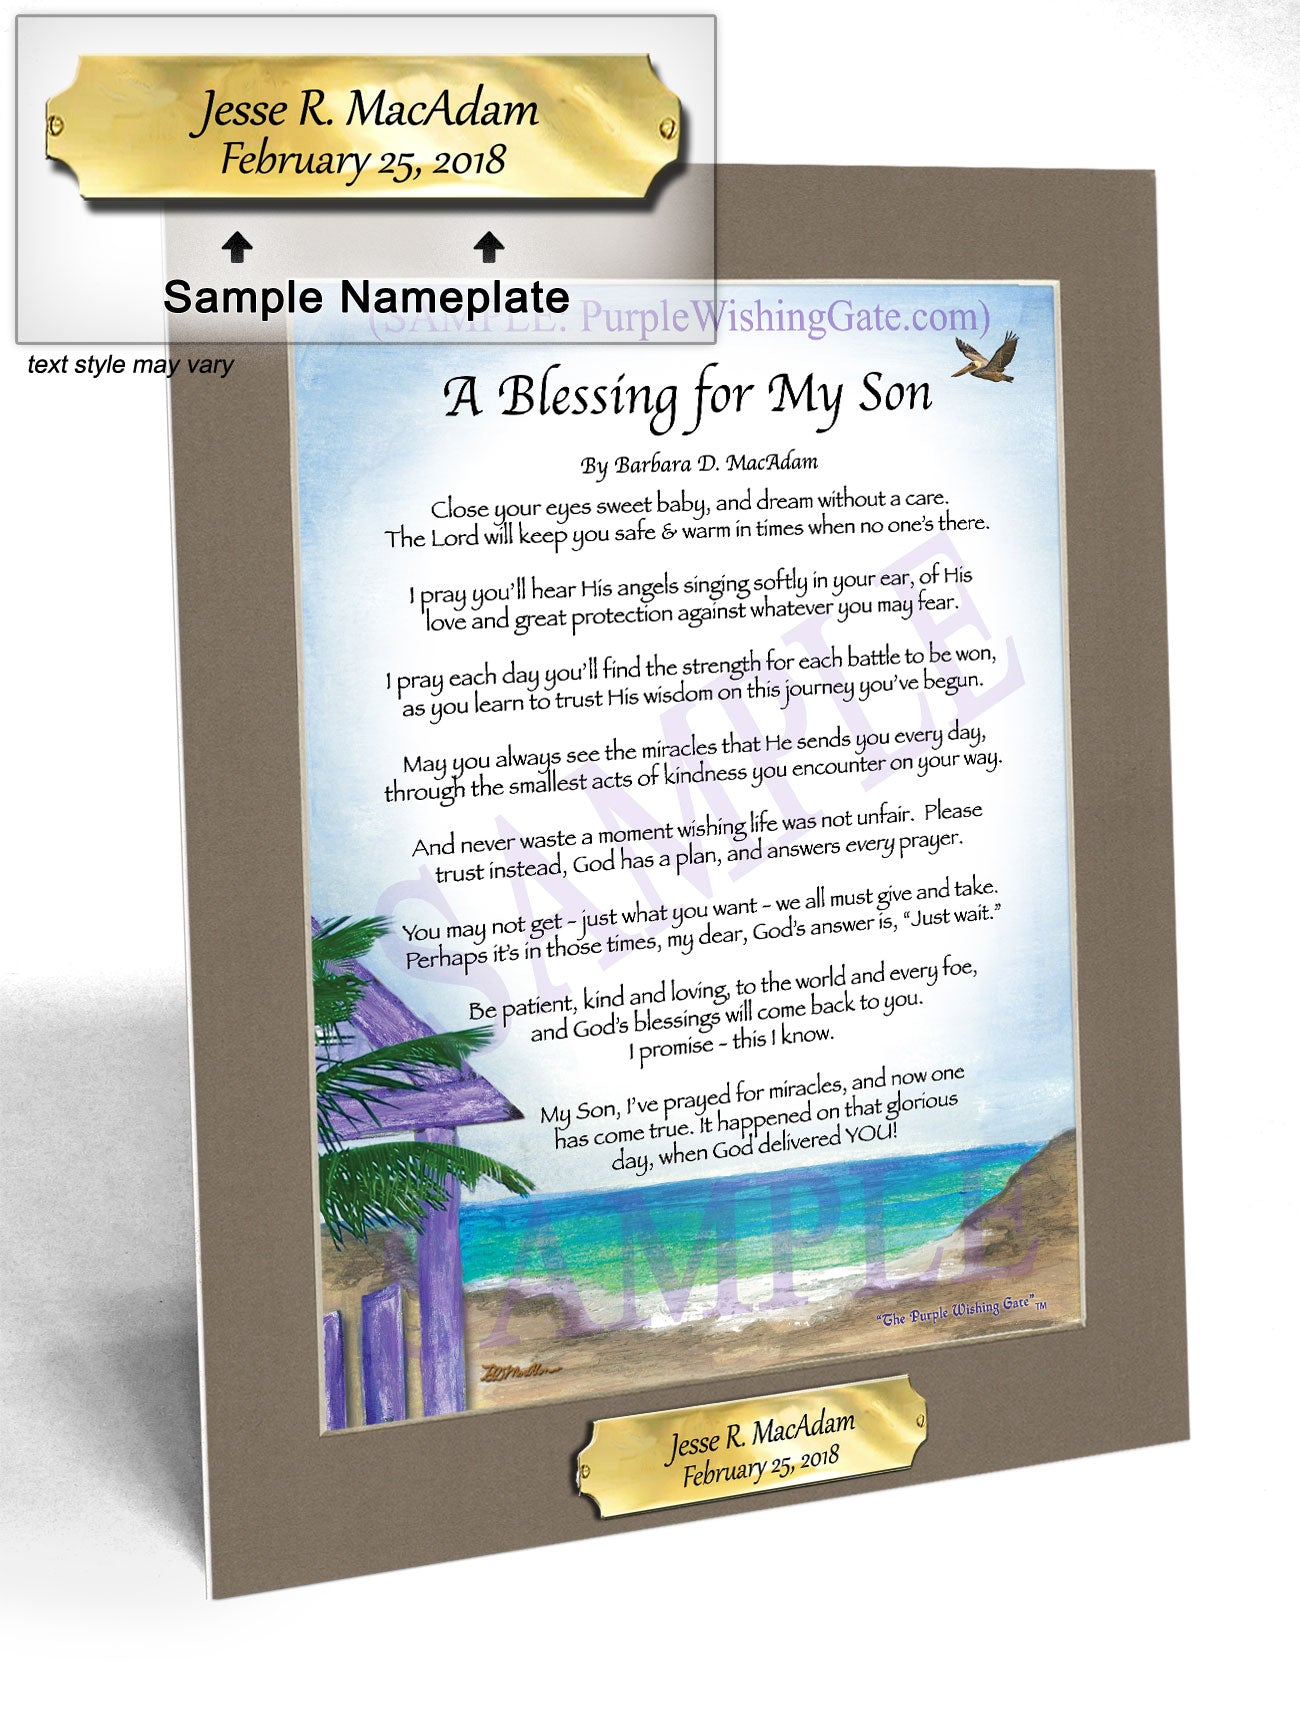 A Blessing for My Son (baby) - Baby Gift - PurpleWishingGate.com